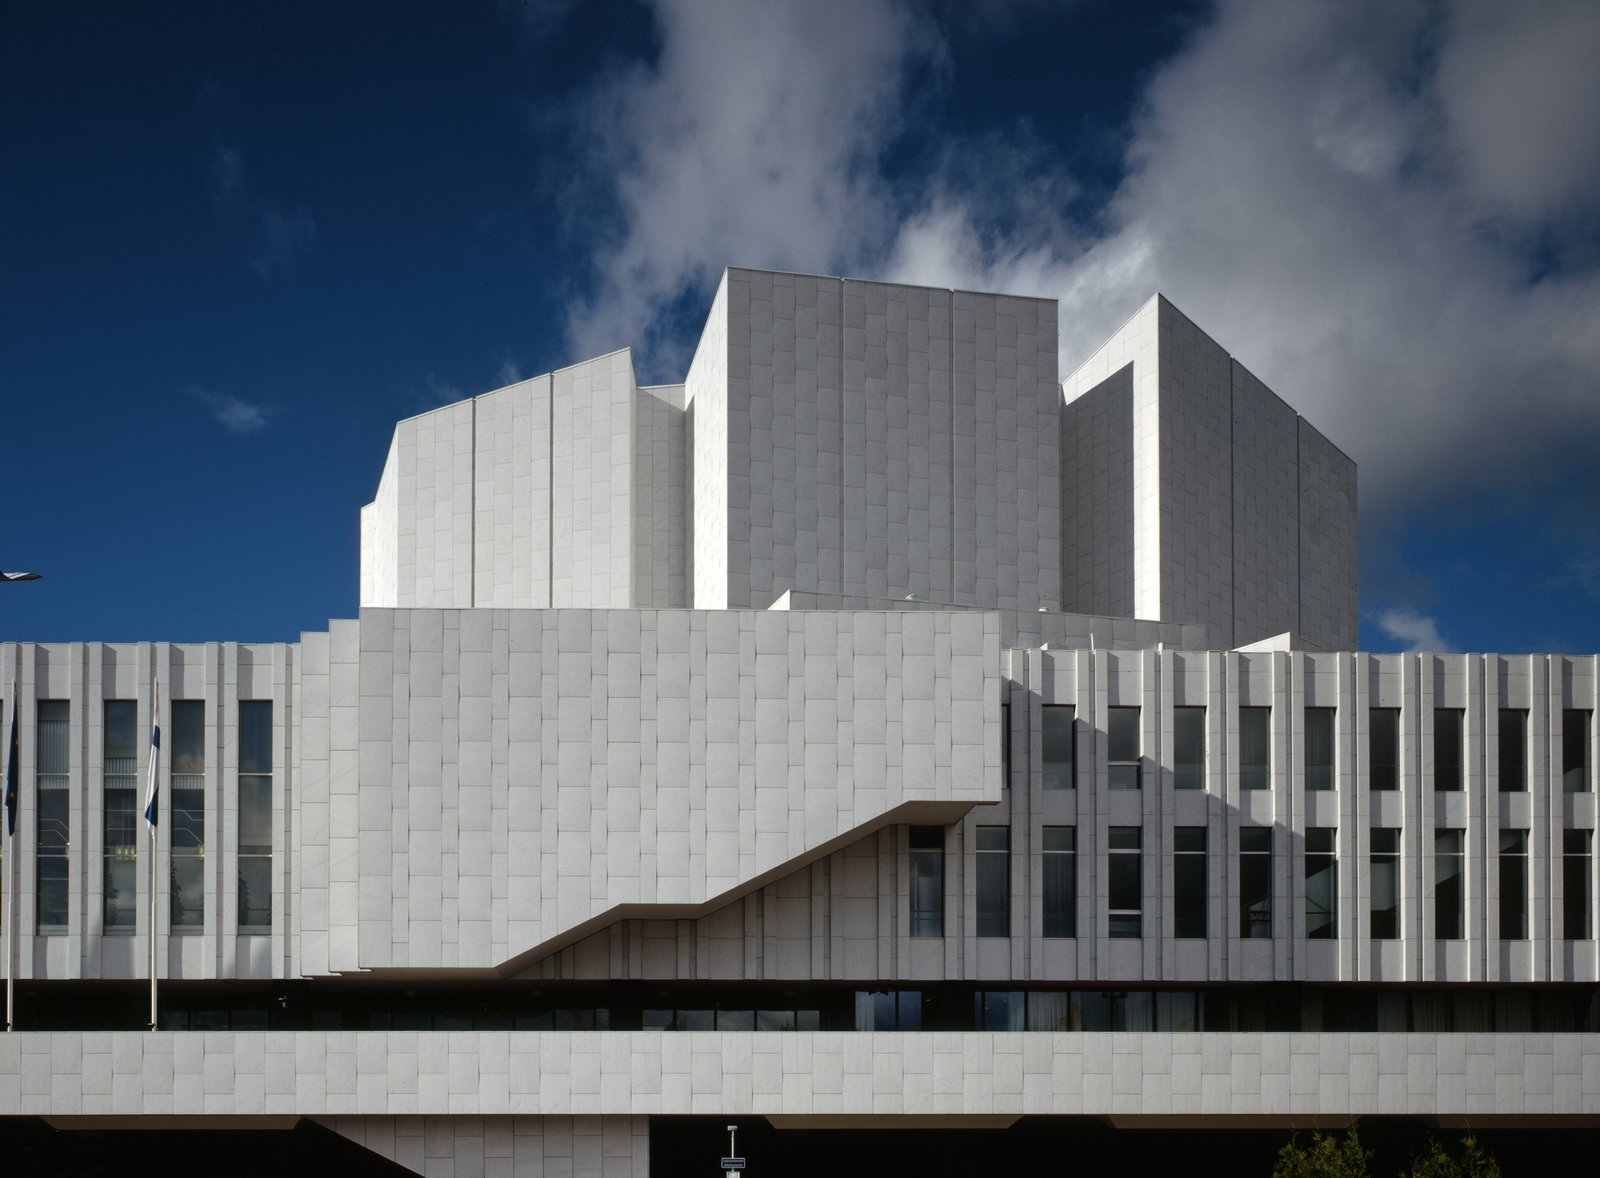 Finlandia Hall (Helsinki, Finland: 1971)  This seaside concert hall is a centerpiece of the Finnish capital, boasting a towering auditorium and high roof (meant to improve acoustics), curving balconies and an exterior of white marble and black granite.   (Credit: © Alvar Aalto Museum  Rune Snellman)  Photo 1 of 11 in Design Icon: 10 Buildings By Alvar Aalto